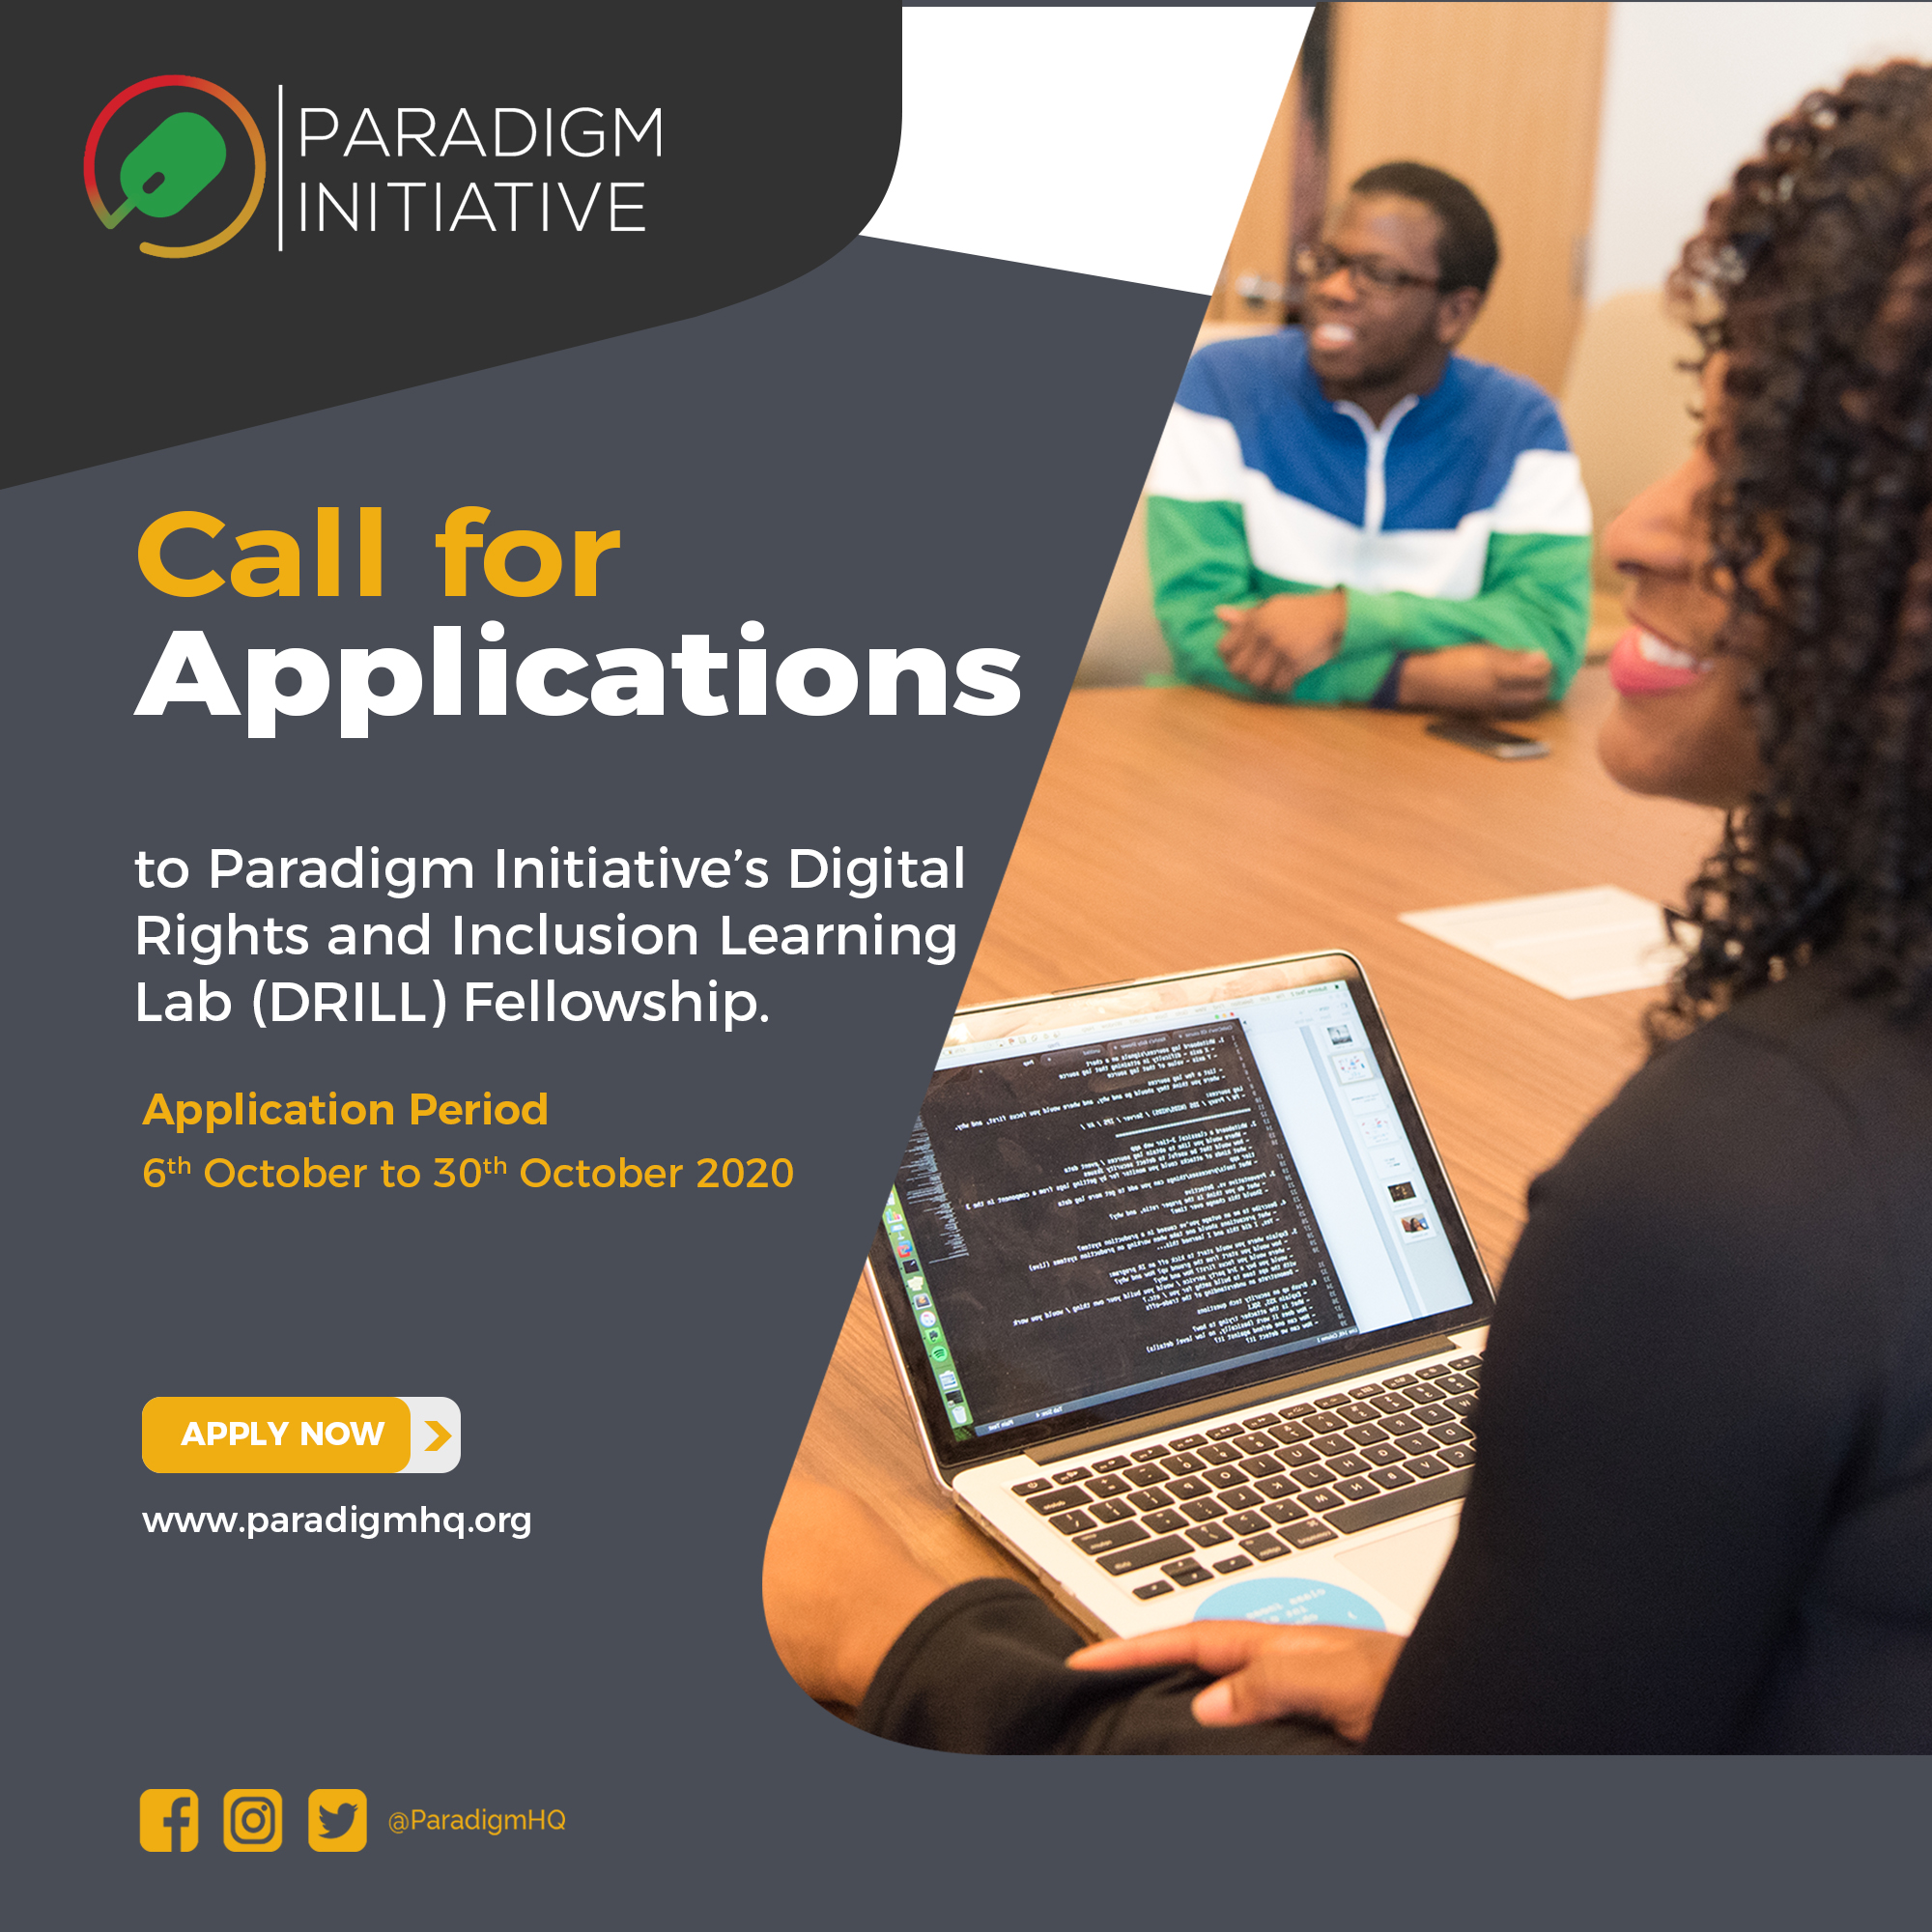 Call for applications to Paradigm Initiative's Digital Rights and Inclusion Learning Lab (DRILL) Fellowship